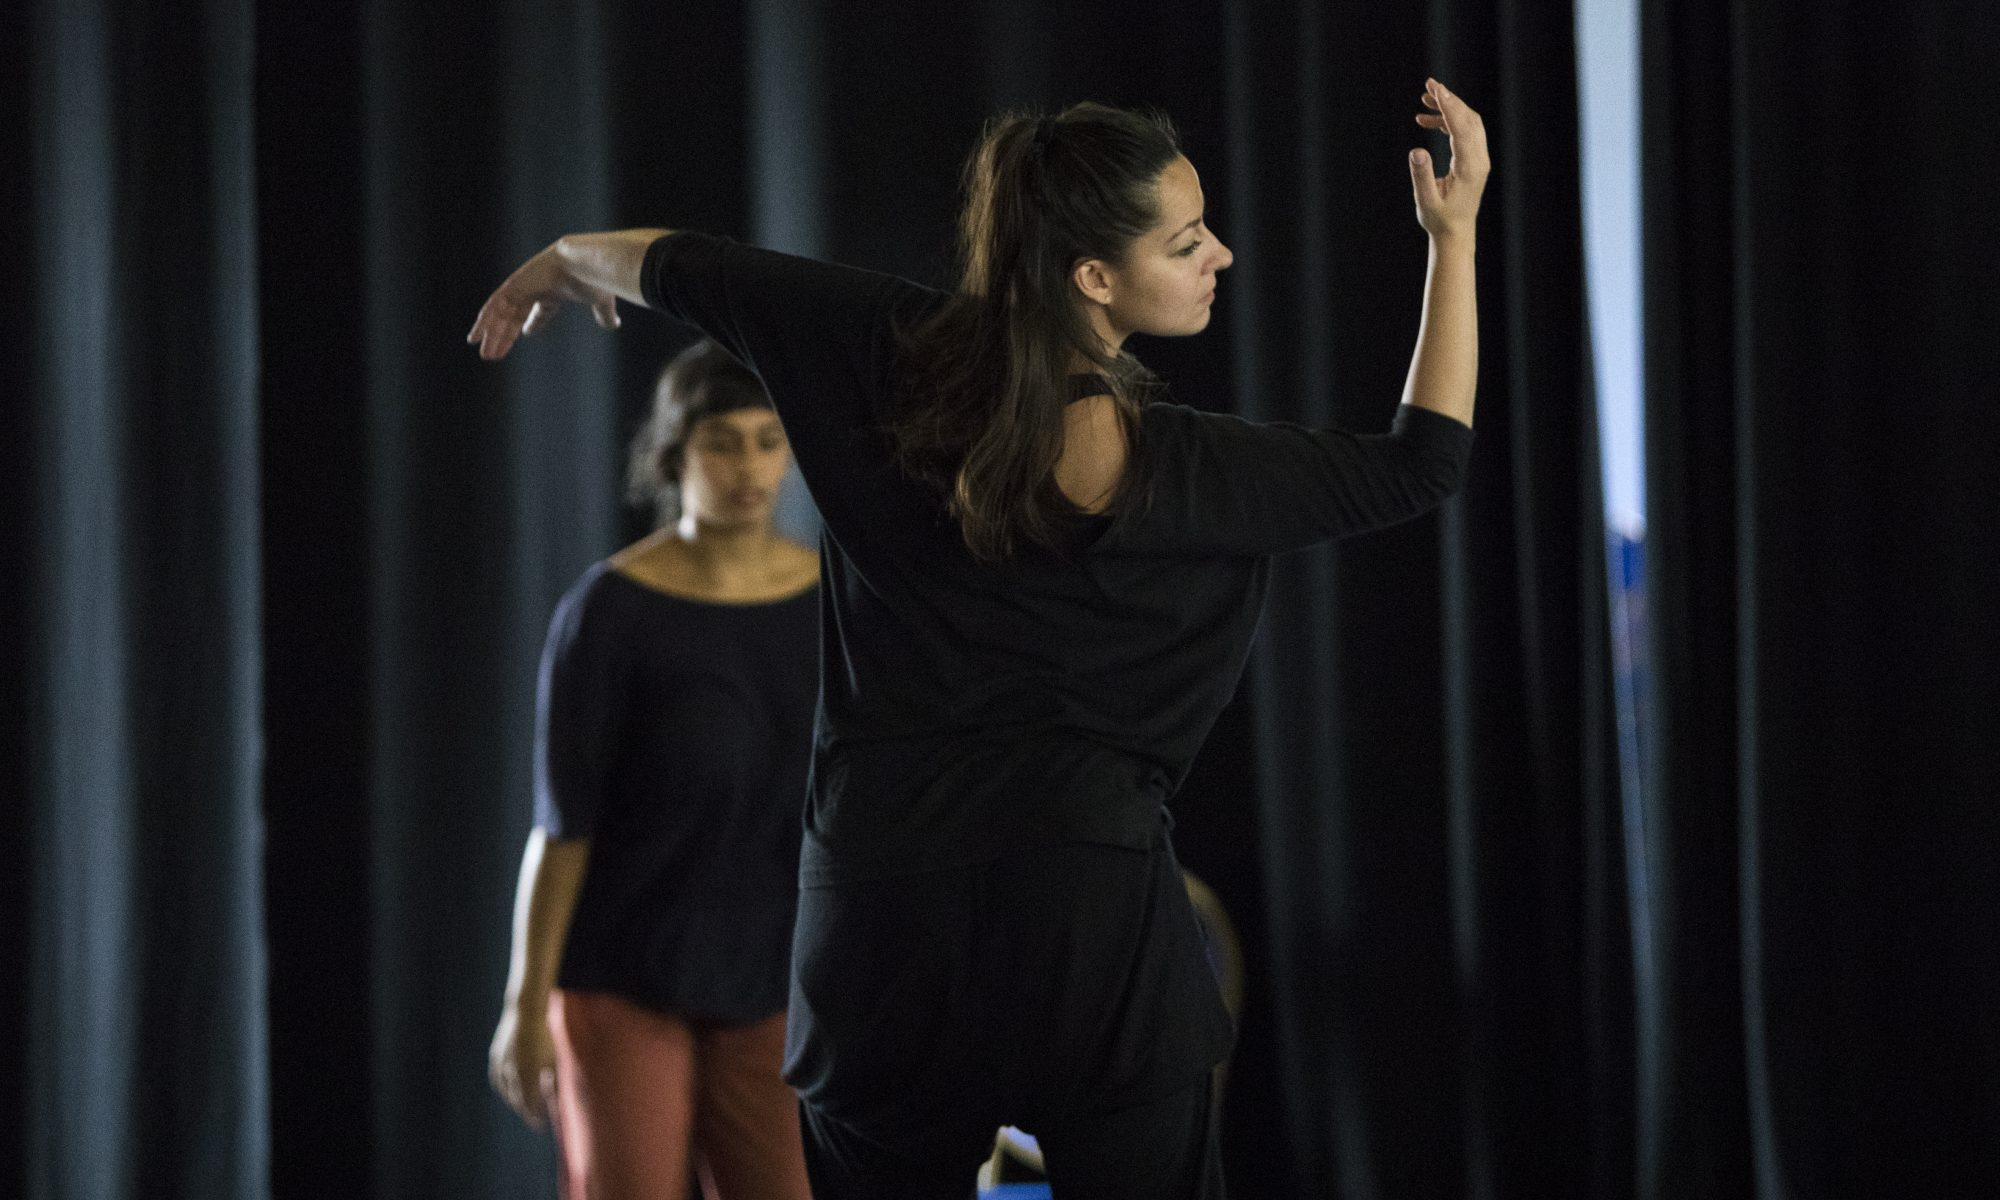 Nadia Iftkhar dancing with her back to the camera, looking over her shoulder with her arms in the air. Her left arm is stretched out to the side and her right arm is bent, with her hand level with her face.